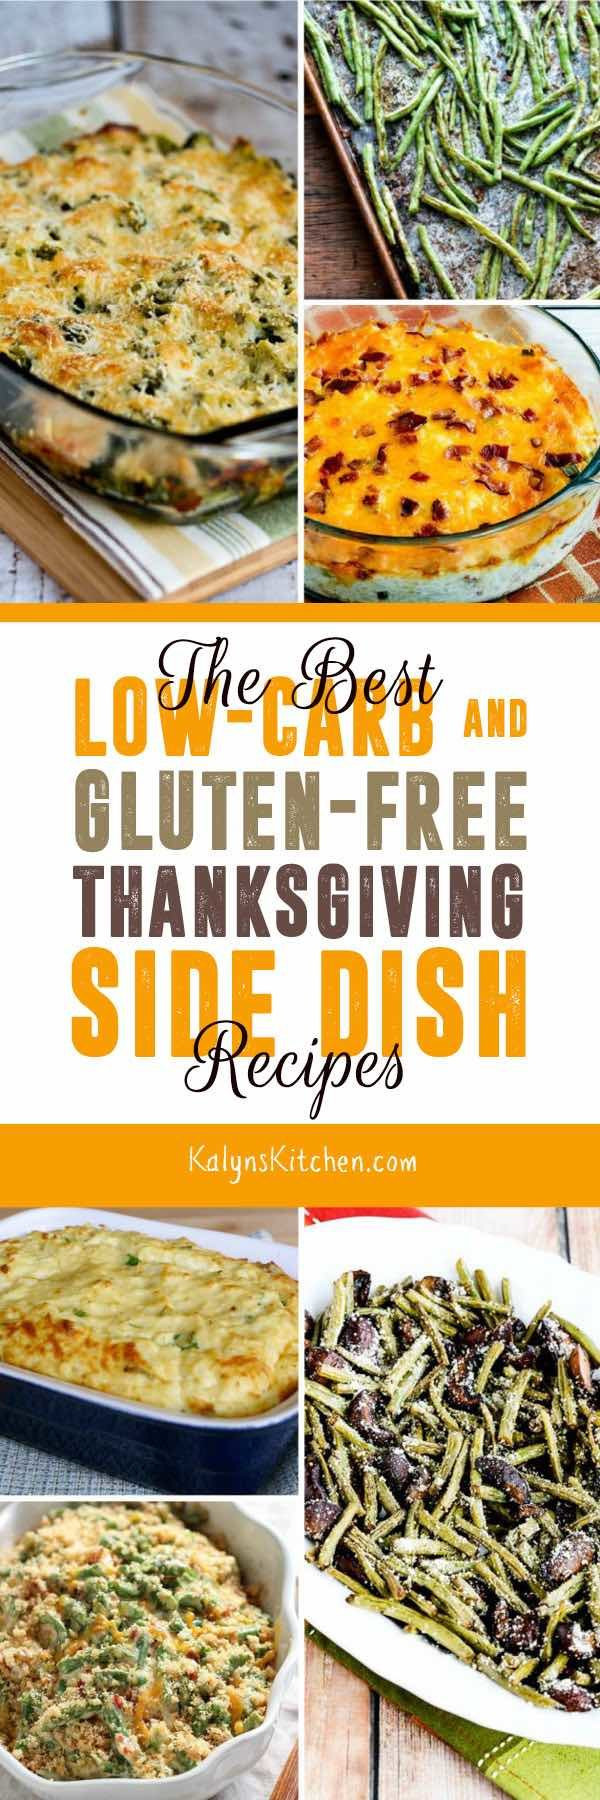 Gluten Free Thanksgiving Sides  The BEST Low Carb and Gluten Free Thanksgiving Side Dish